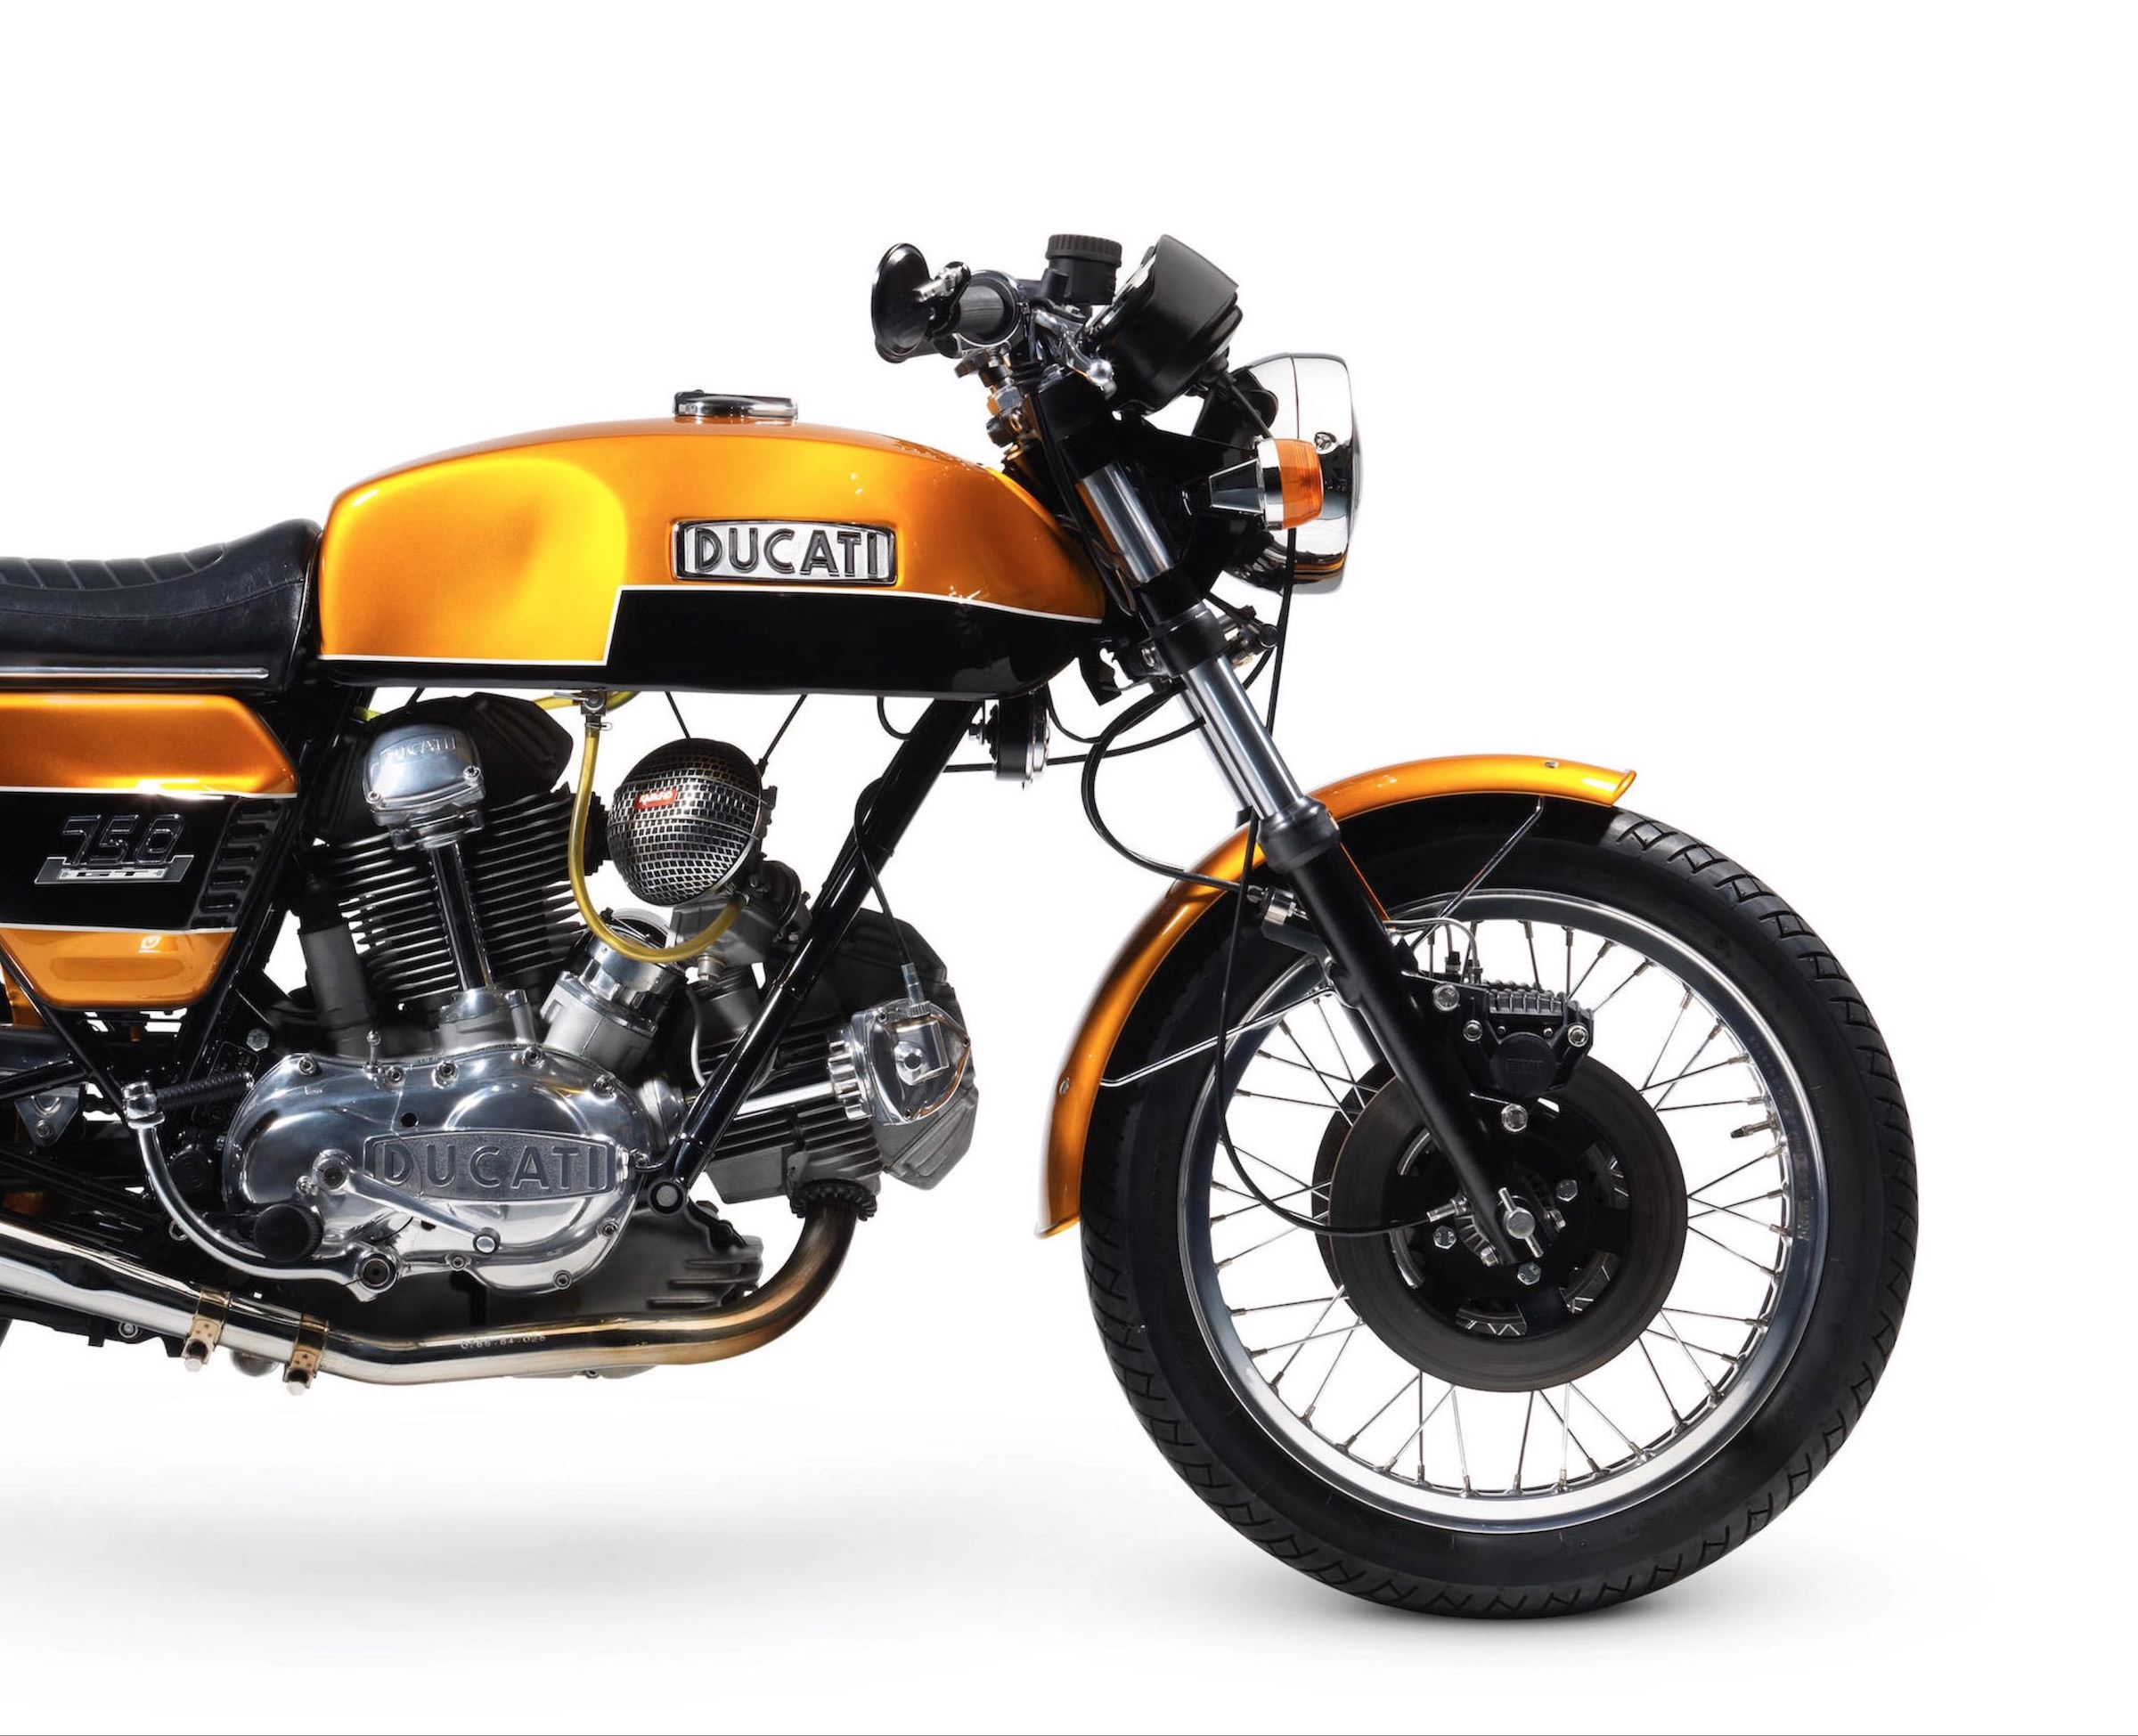 the first ducati production l twin the ducati 750 gt. Black Bedroom Furniture Sets. Home Design Ideas